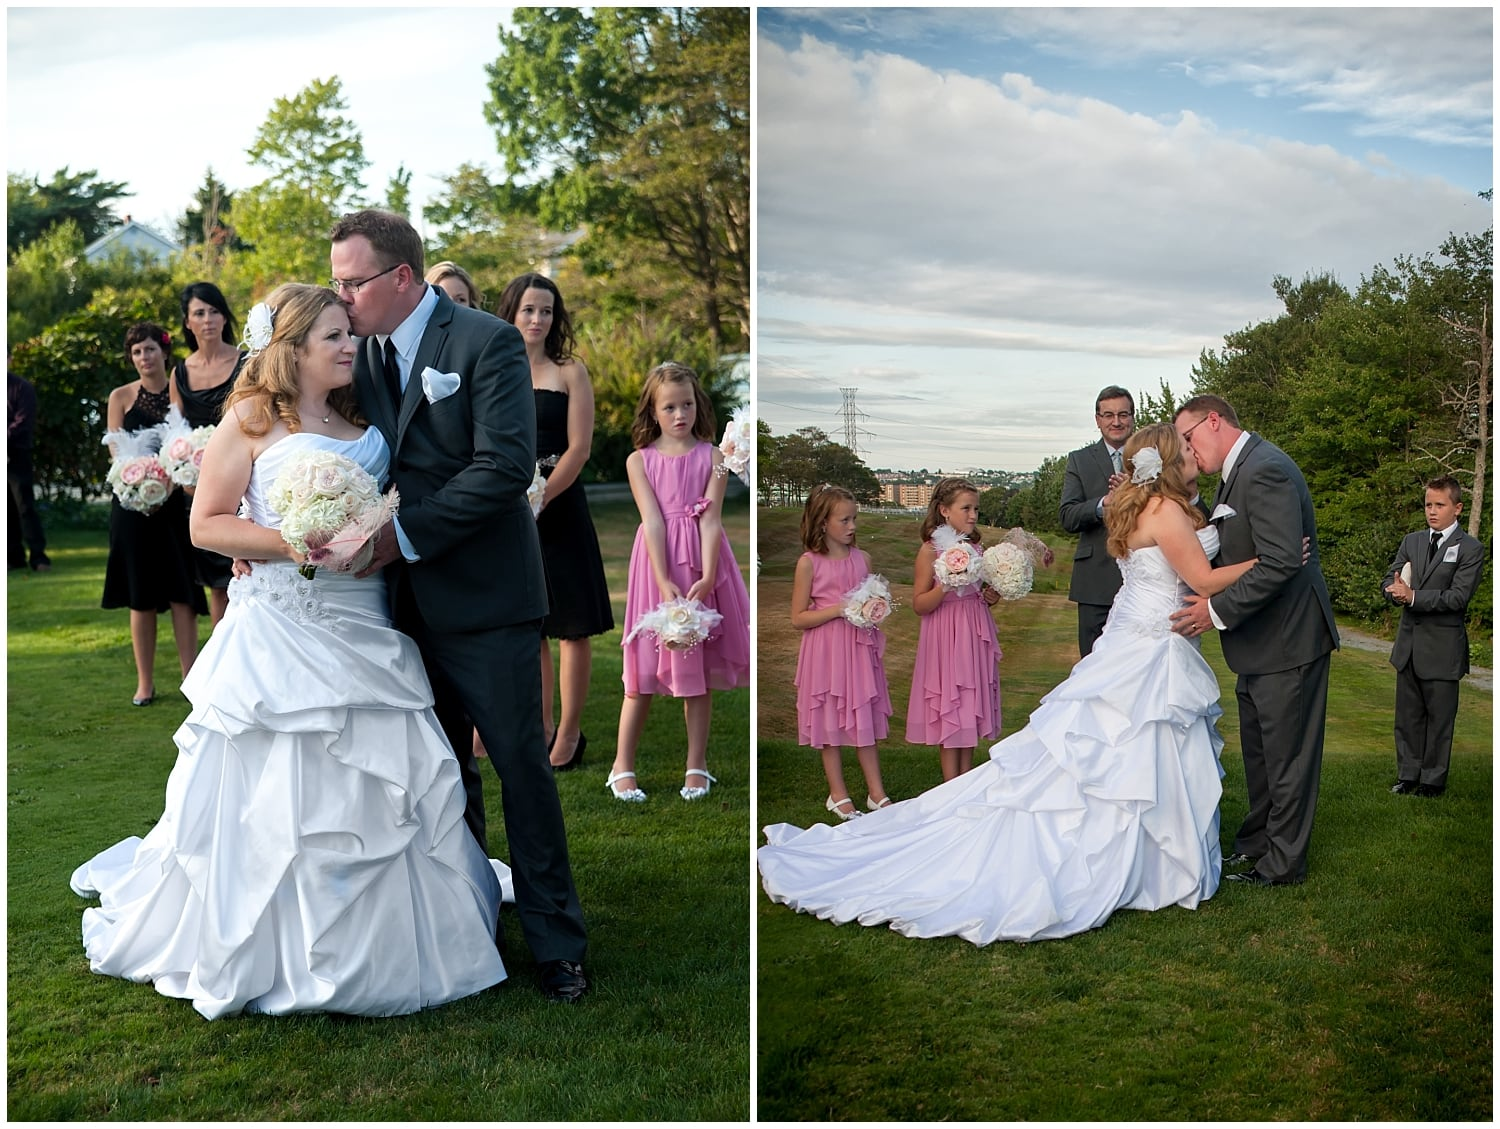 The groom and bride have their first kiss during their wedding ceremony at the Ashburn Golf Club in Halifax Nova Scotia.